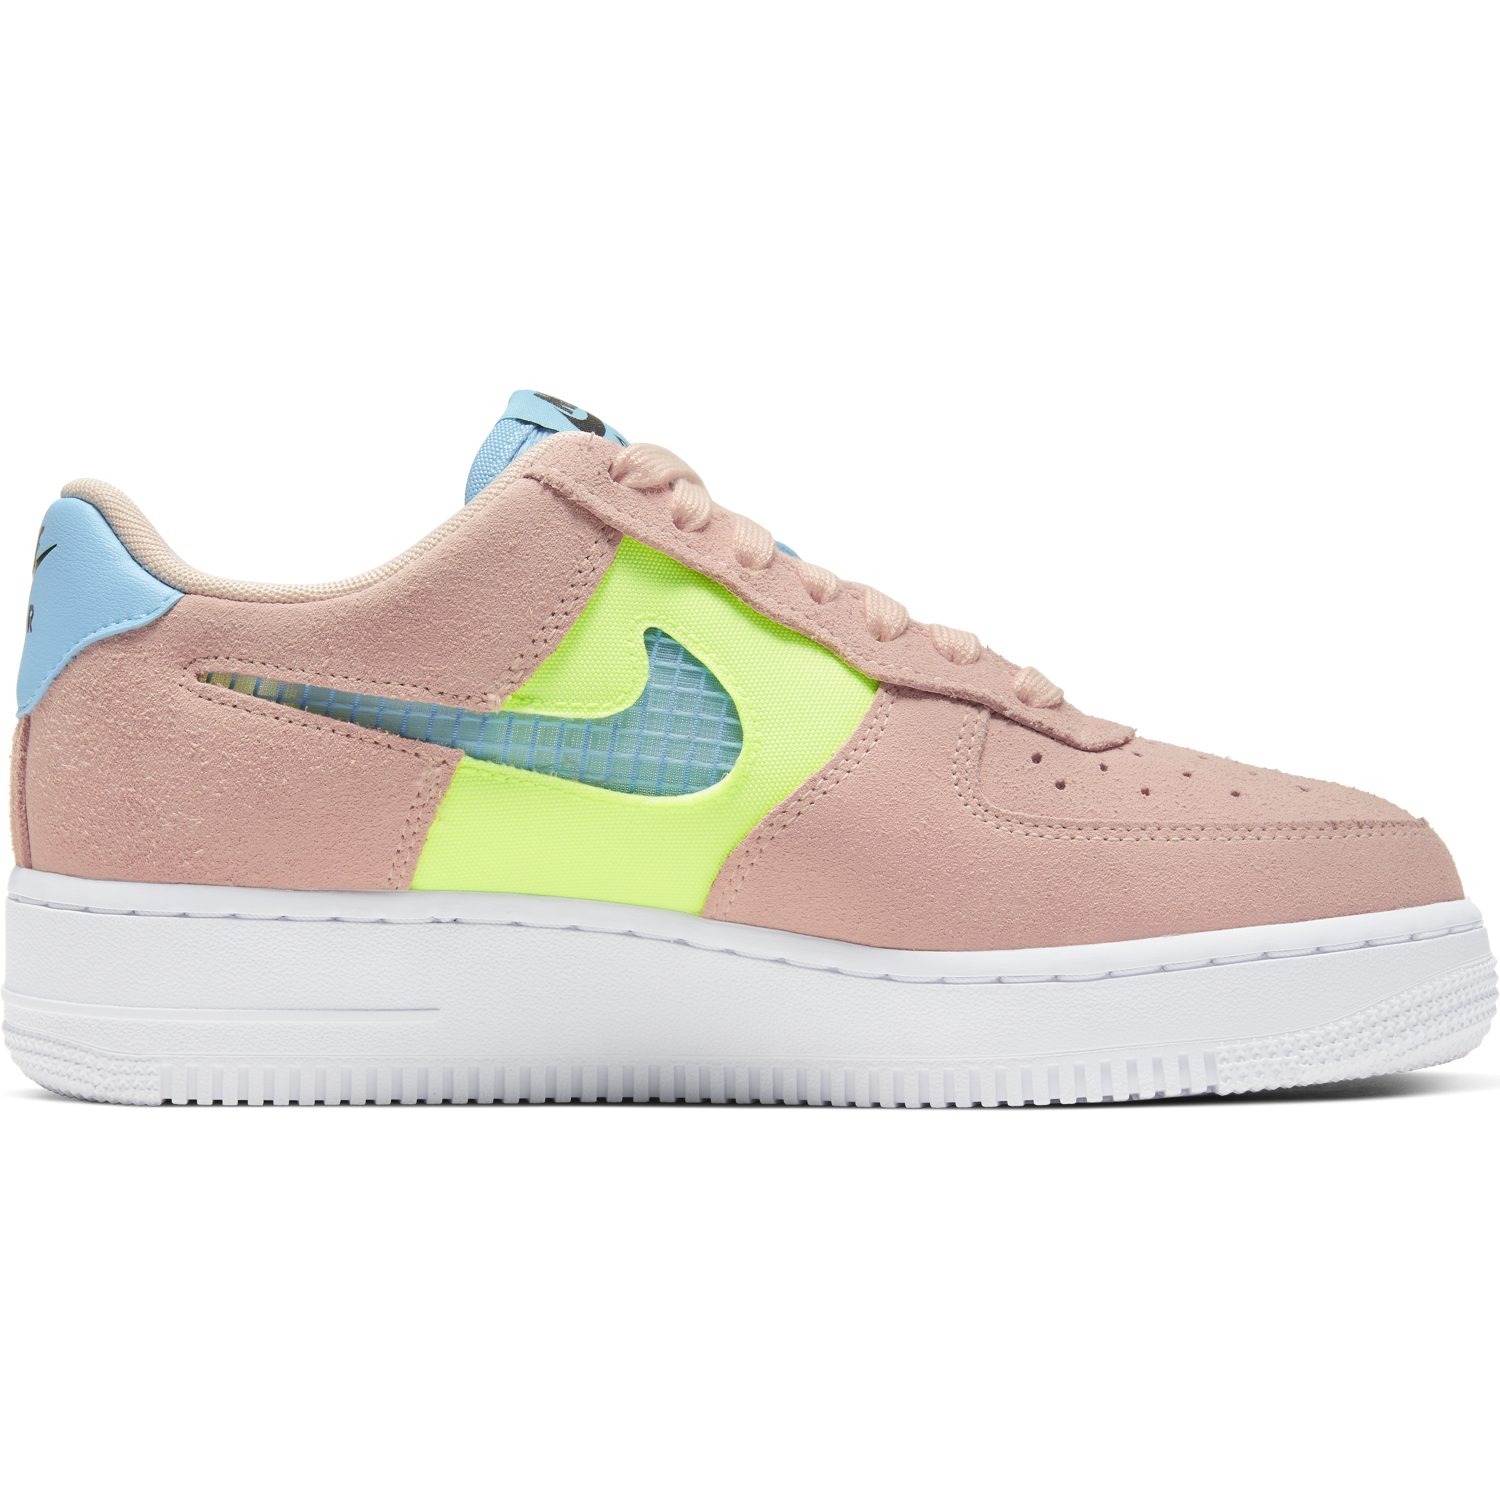 NIKE W'S FOOTWEAR W AIR FORCE 1 '07 SE - WASHED CORAL/ORACLE AQUA